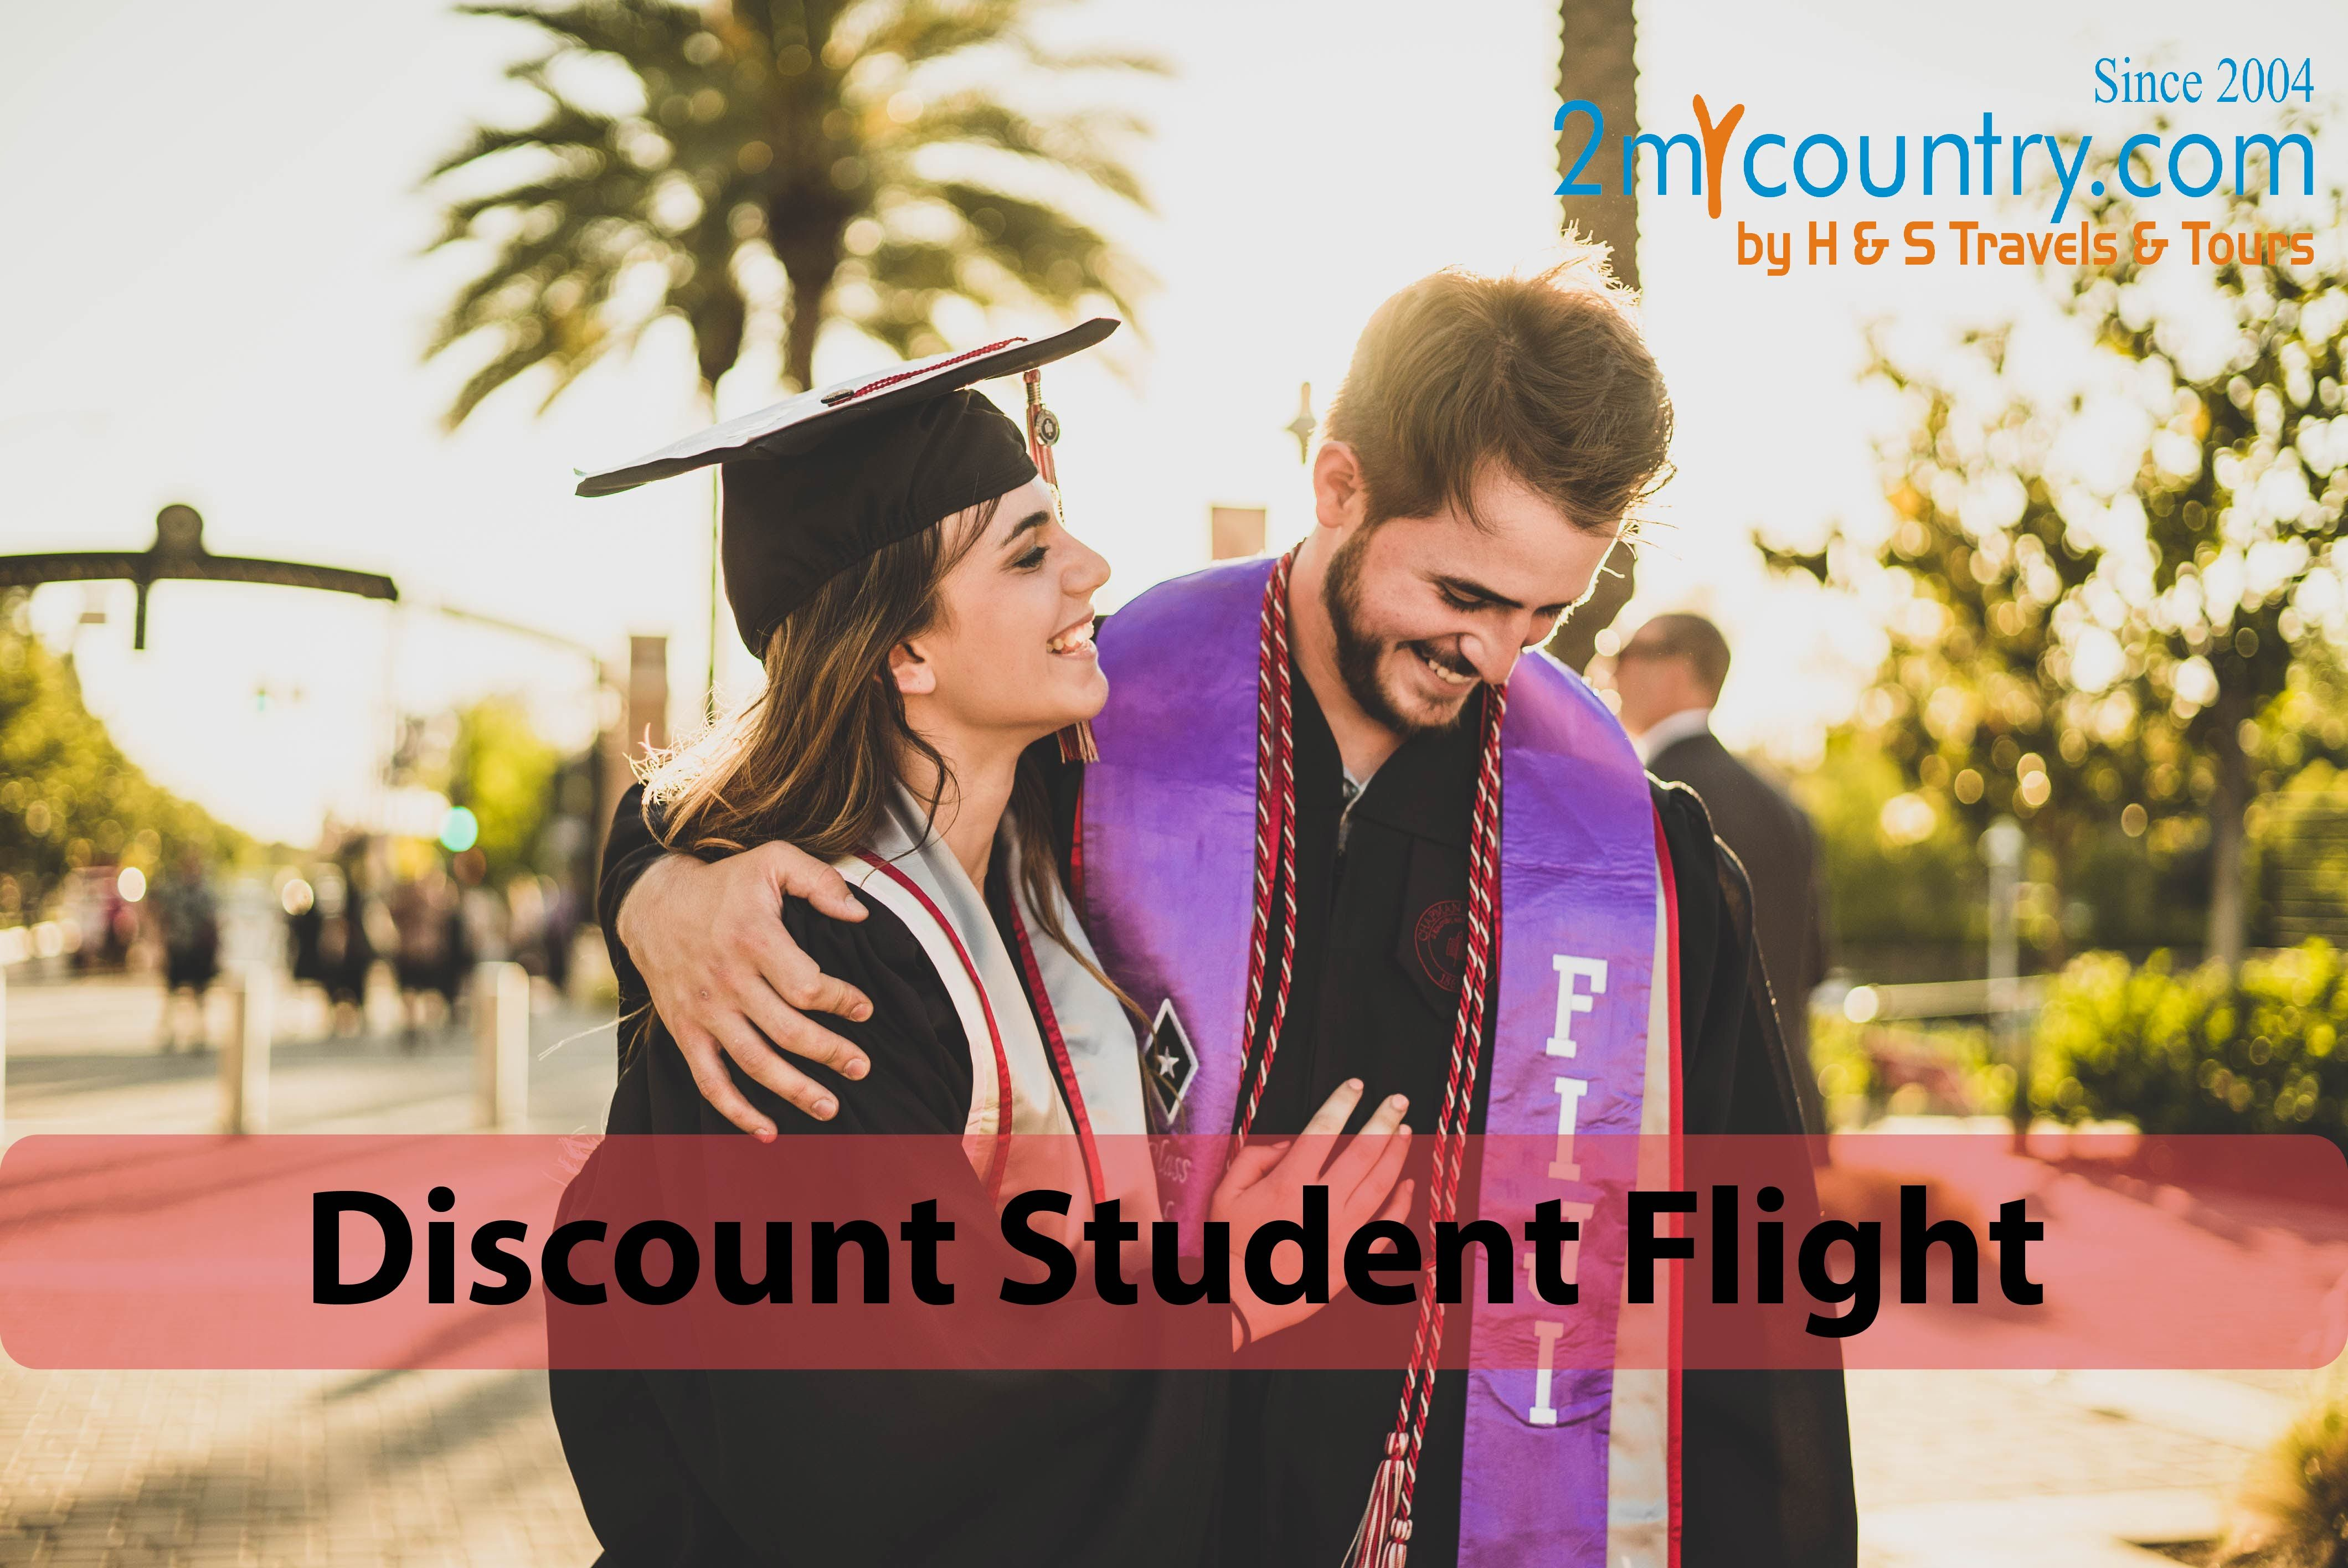 Find student flights and student airfare on 2mycountry. Book now and save big on student travel to popular destination throughout the world.  #airlinetickets #studentflights #cheapflights #flighttickets #studenttickets #photooftheday #studenttravel #traveldeals #travelairfare #2mycountry #cheapairfare #internationalflightdeals #cheapairdeals #picoftheday #studentflight #studenttickets #cheapflightsdeals #cheapdeals #flightsairfares #cheaptickets #cheapairline #studentairtickets #cheapflights